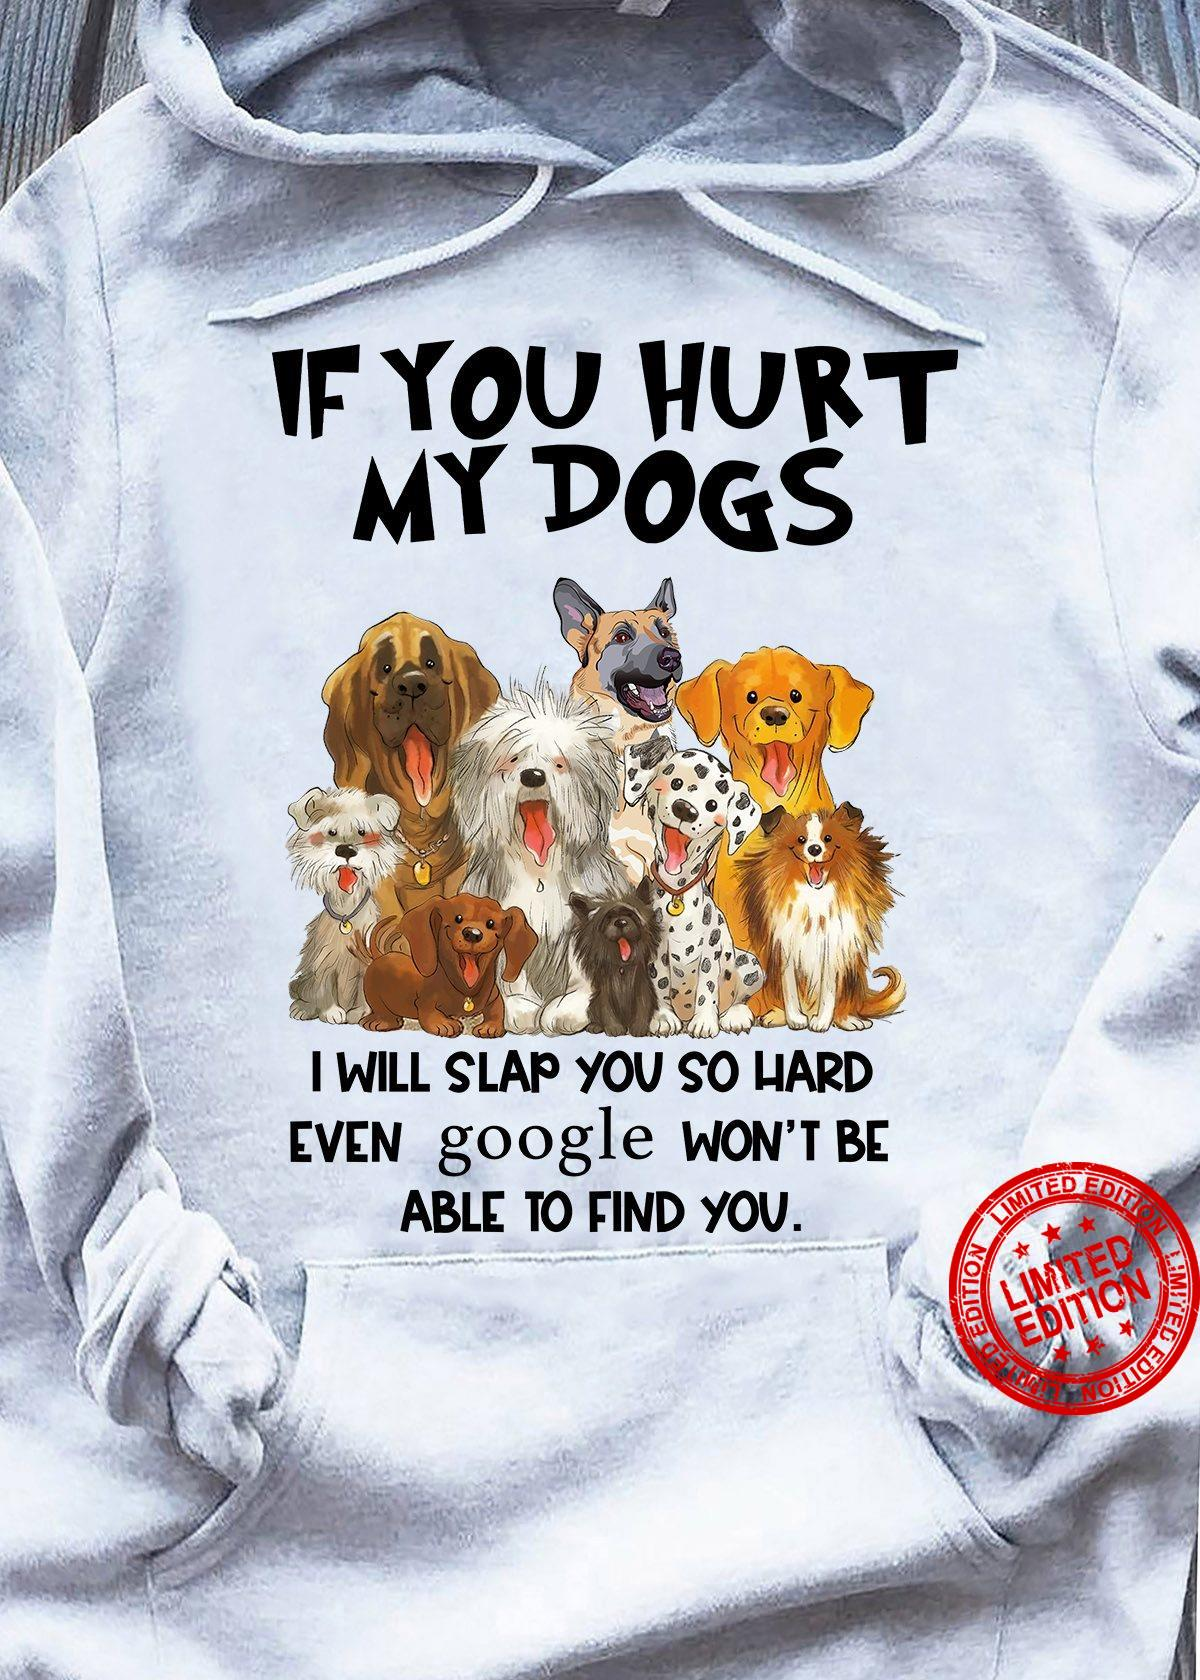 If You Hurt My Dogs I Will Slap You So Hard Even Google Won't Be Able To Find You Shirt